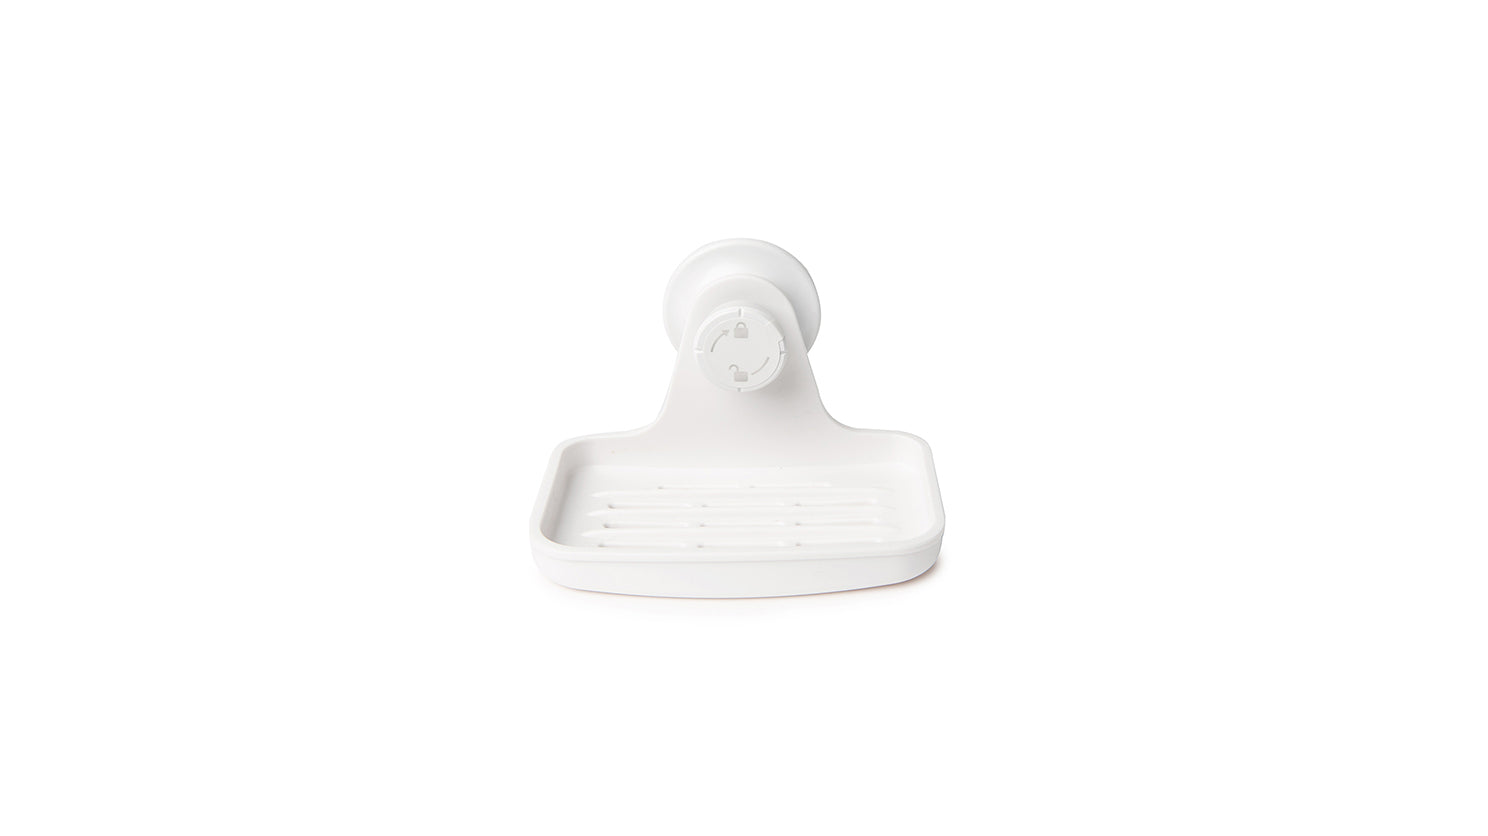 flex gel lock soap dish